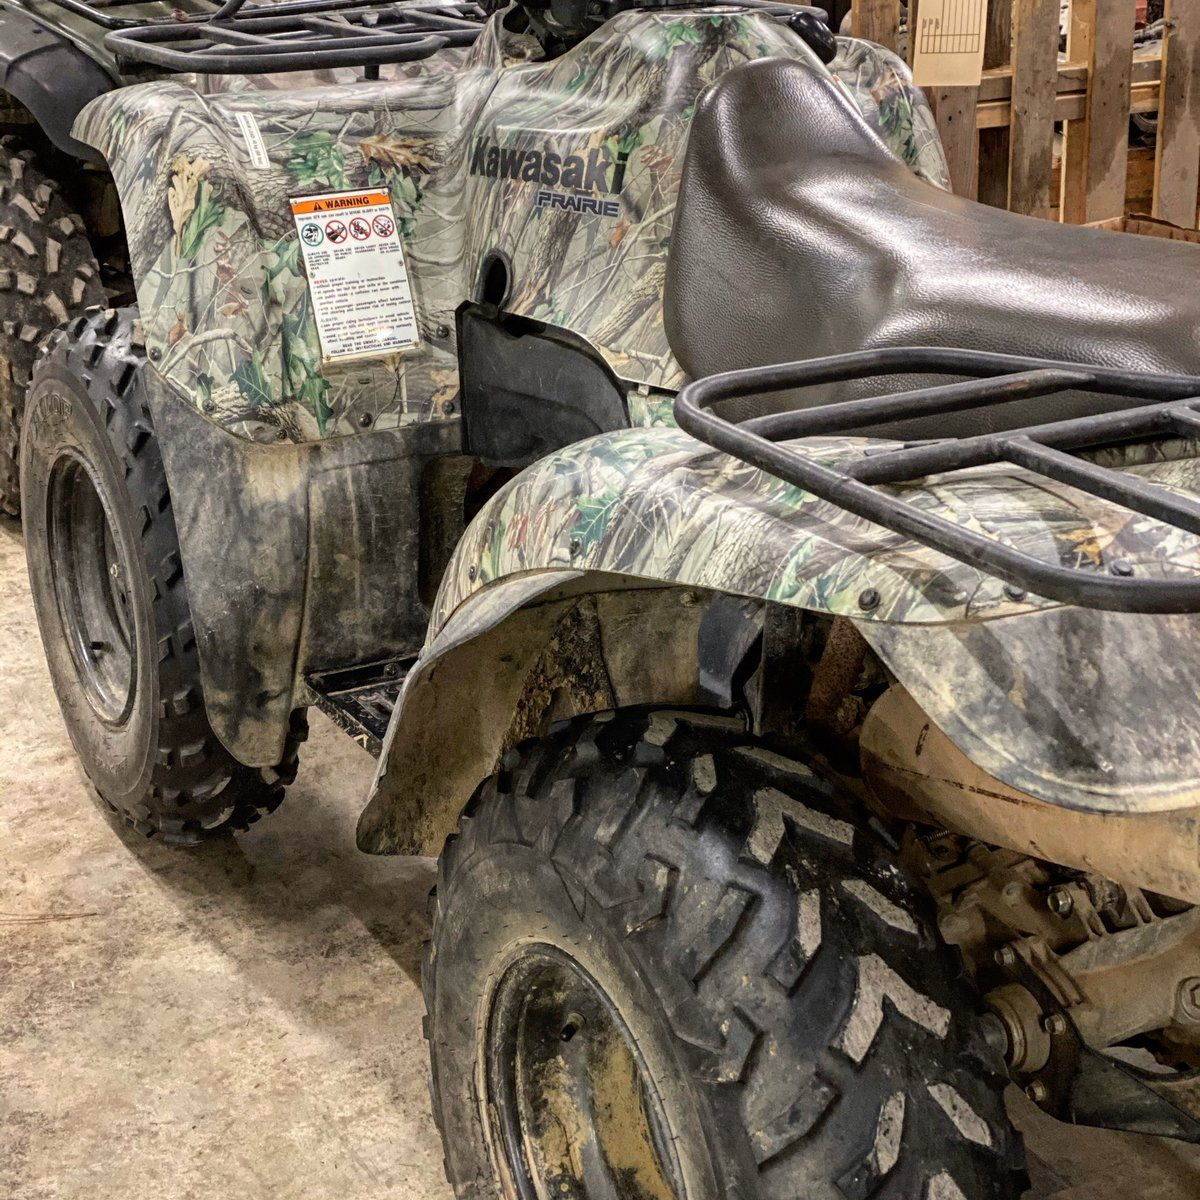 We repair #fourwheelers! Call (662)210-4278 to schedule an appointment with us. 🦆🦌 https://t.co/DuQStKfn0u